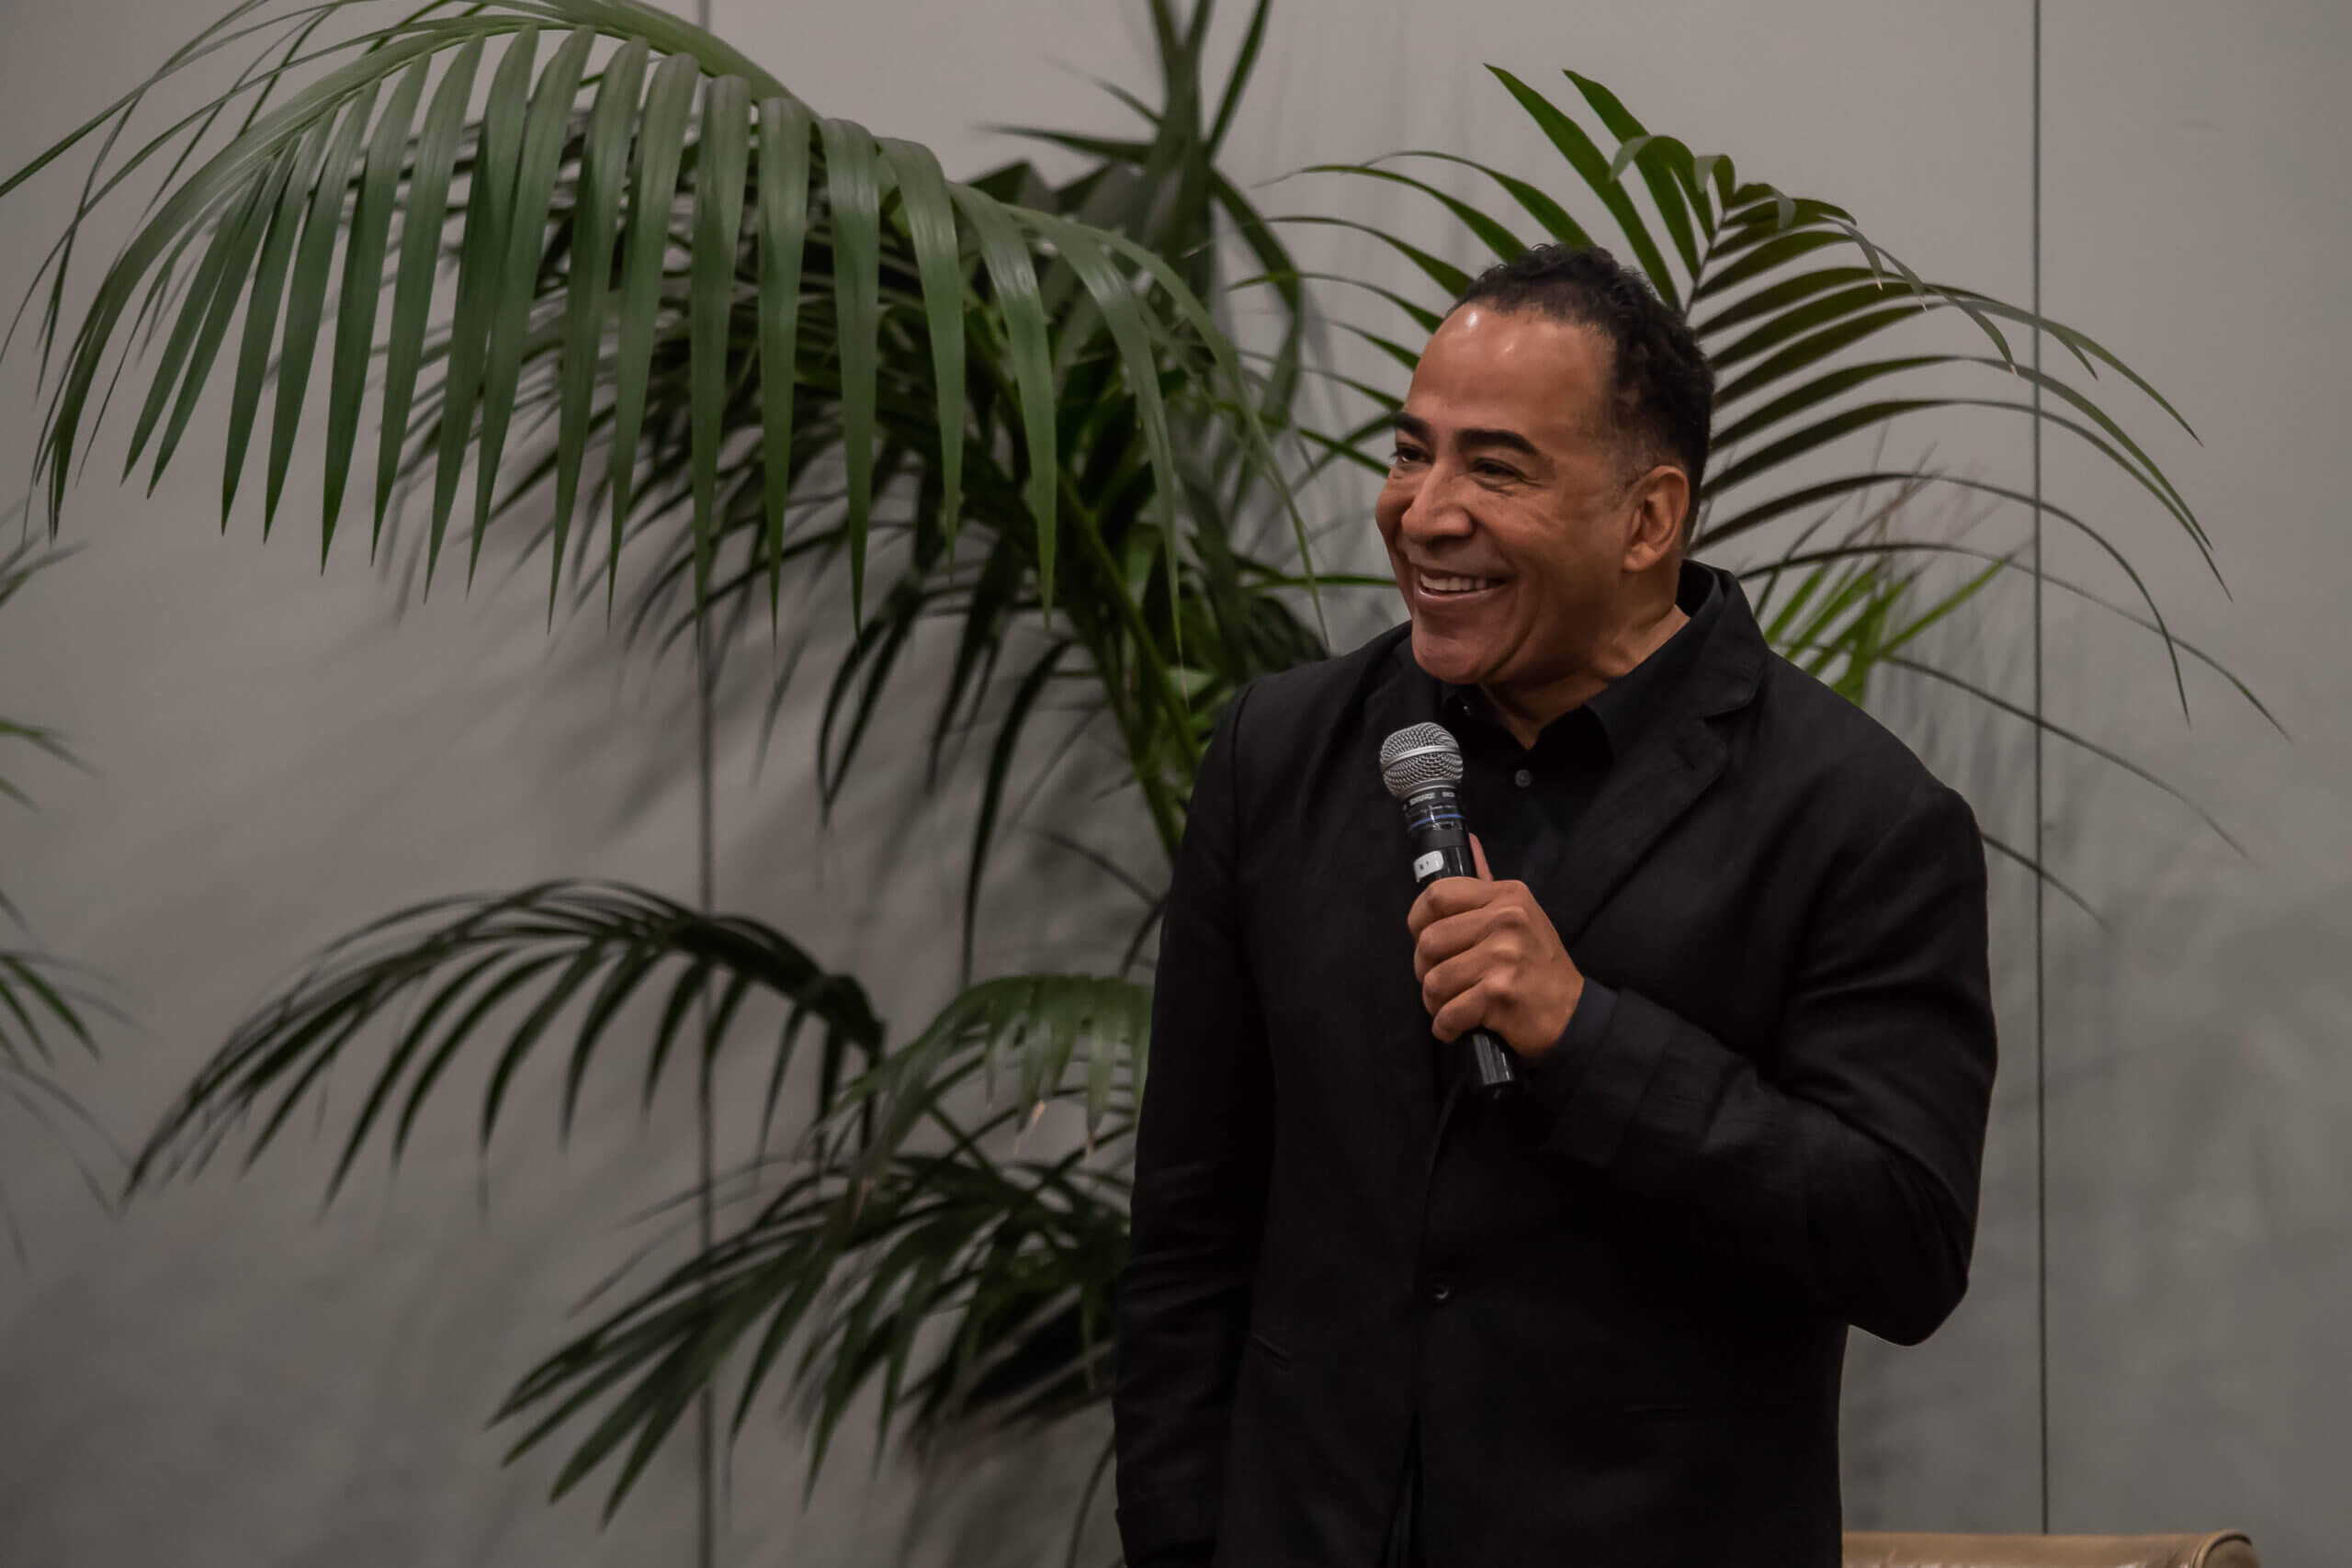 Tim storey smiling and holding a microphone